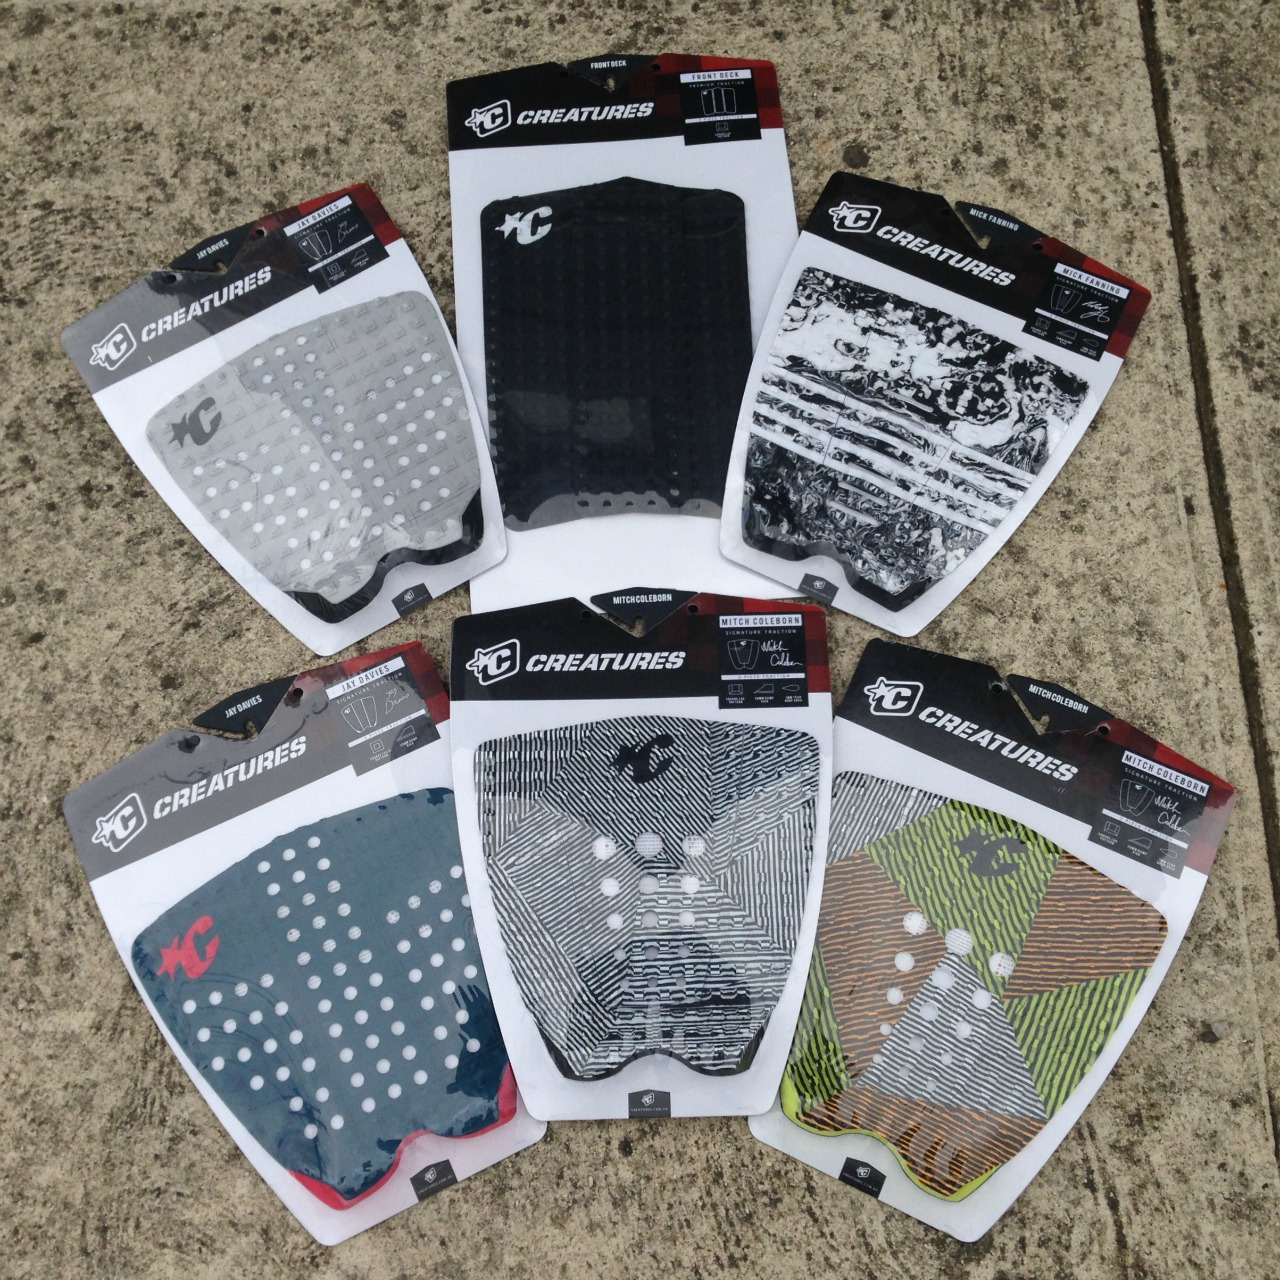 New Creatures Pads now in store